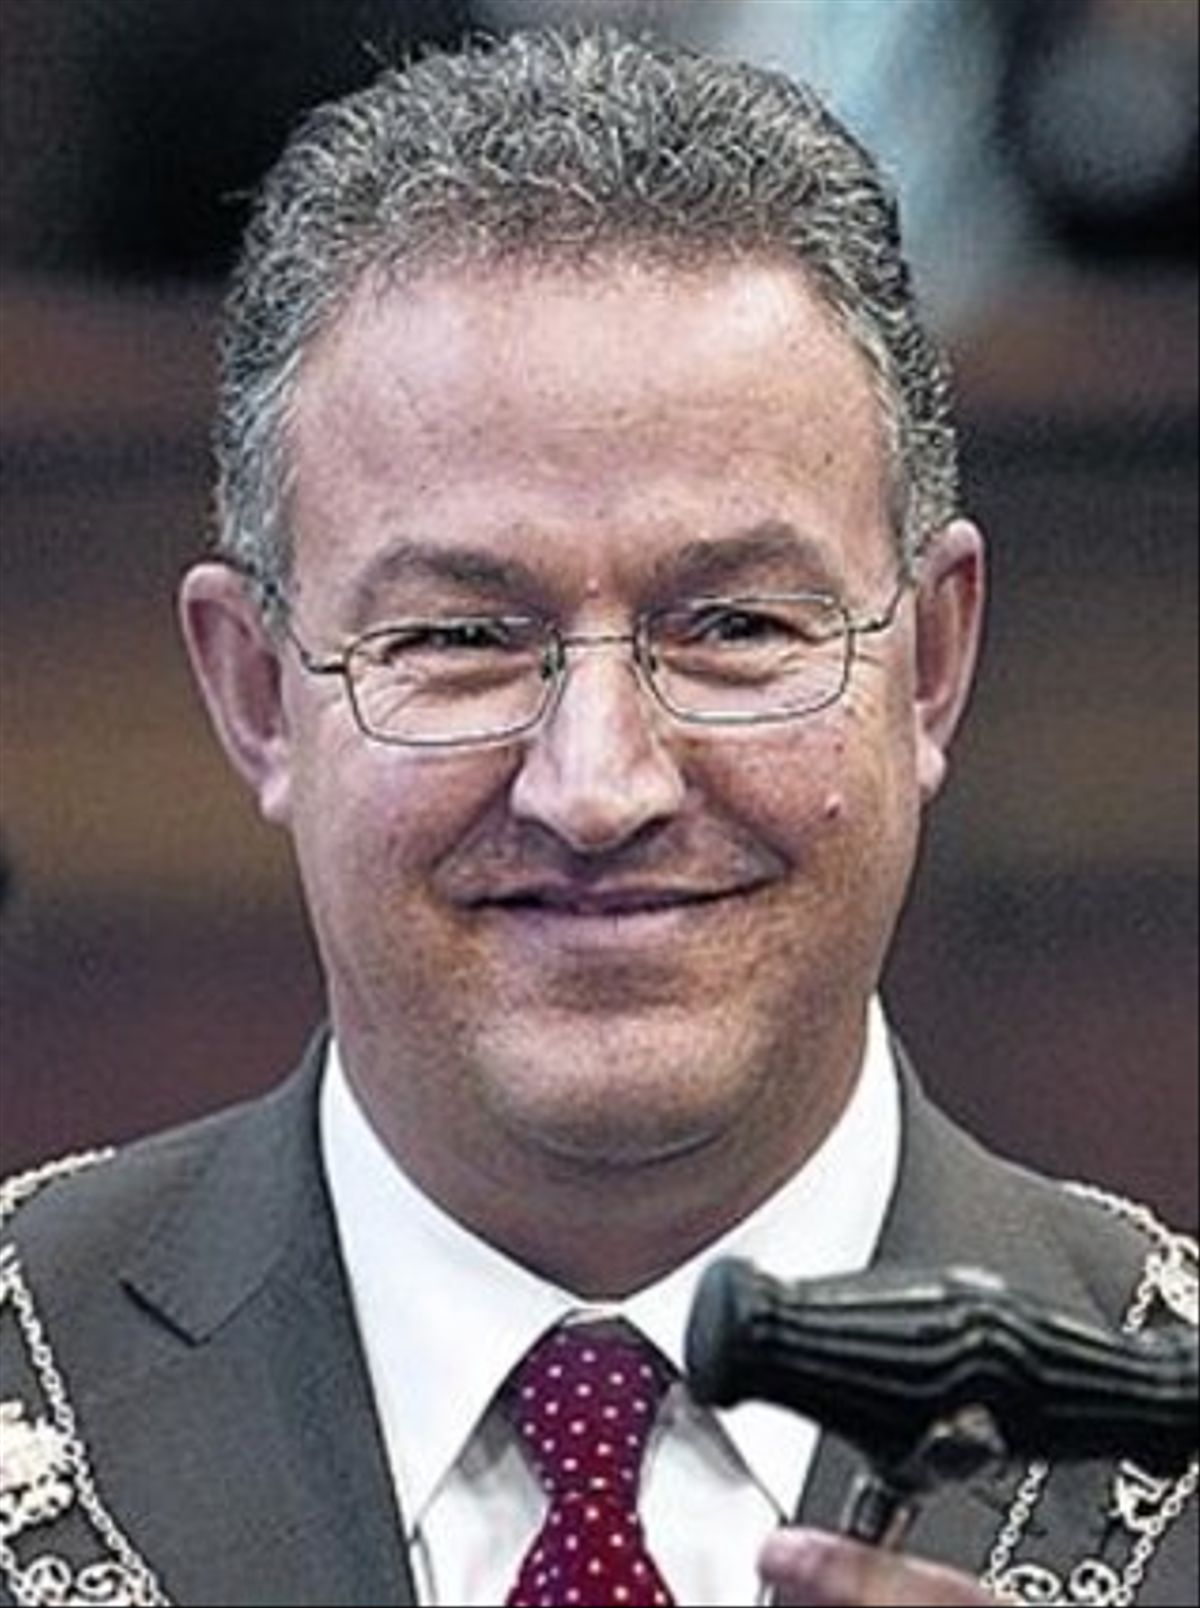 Ahmed Aboutaleb.